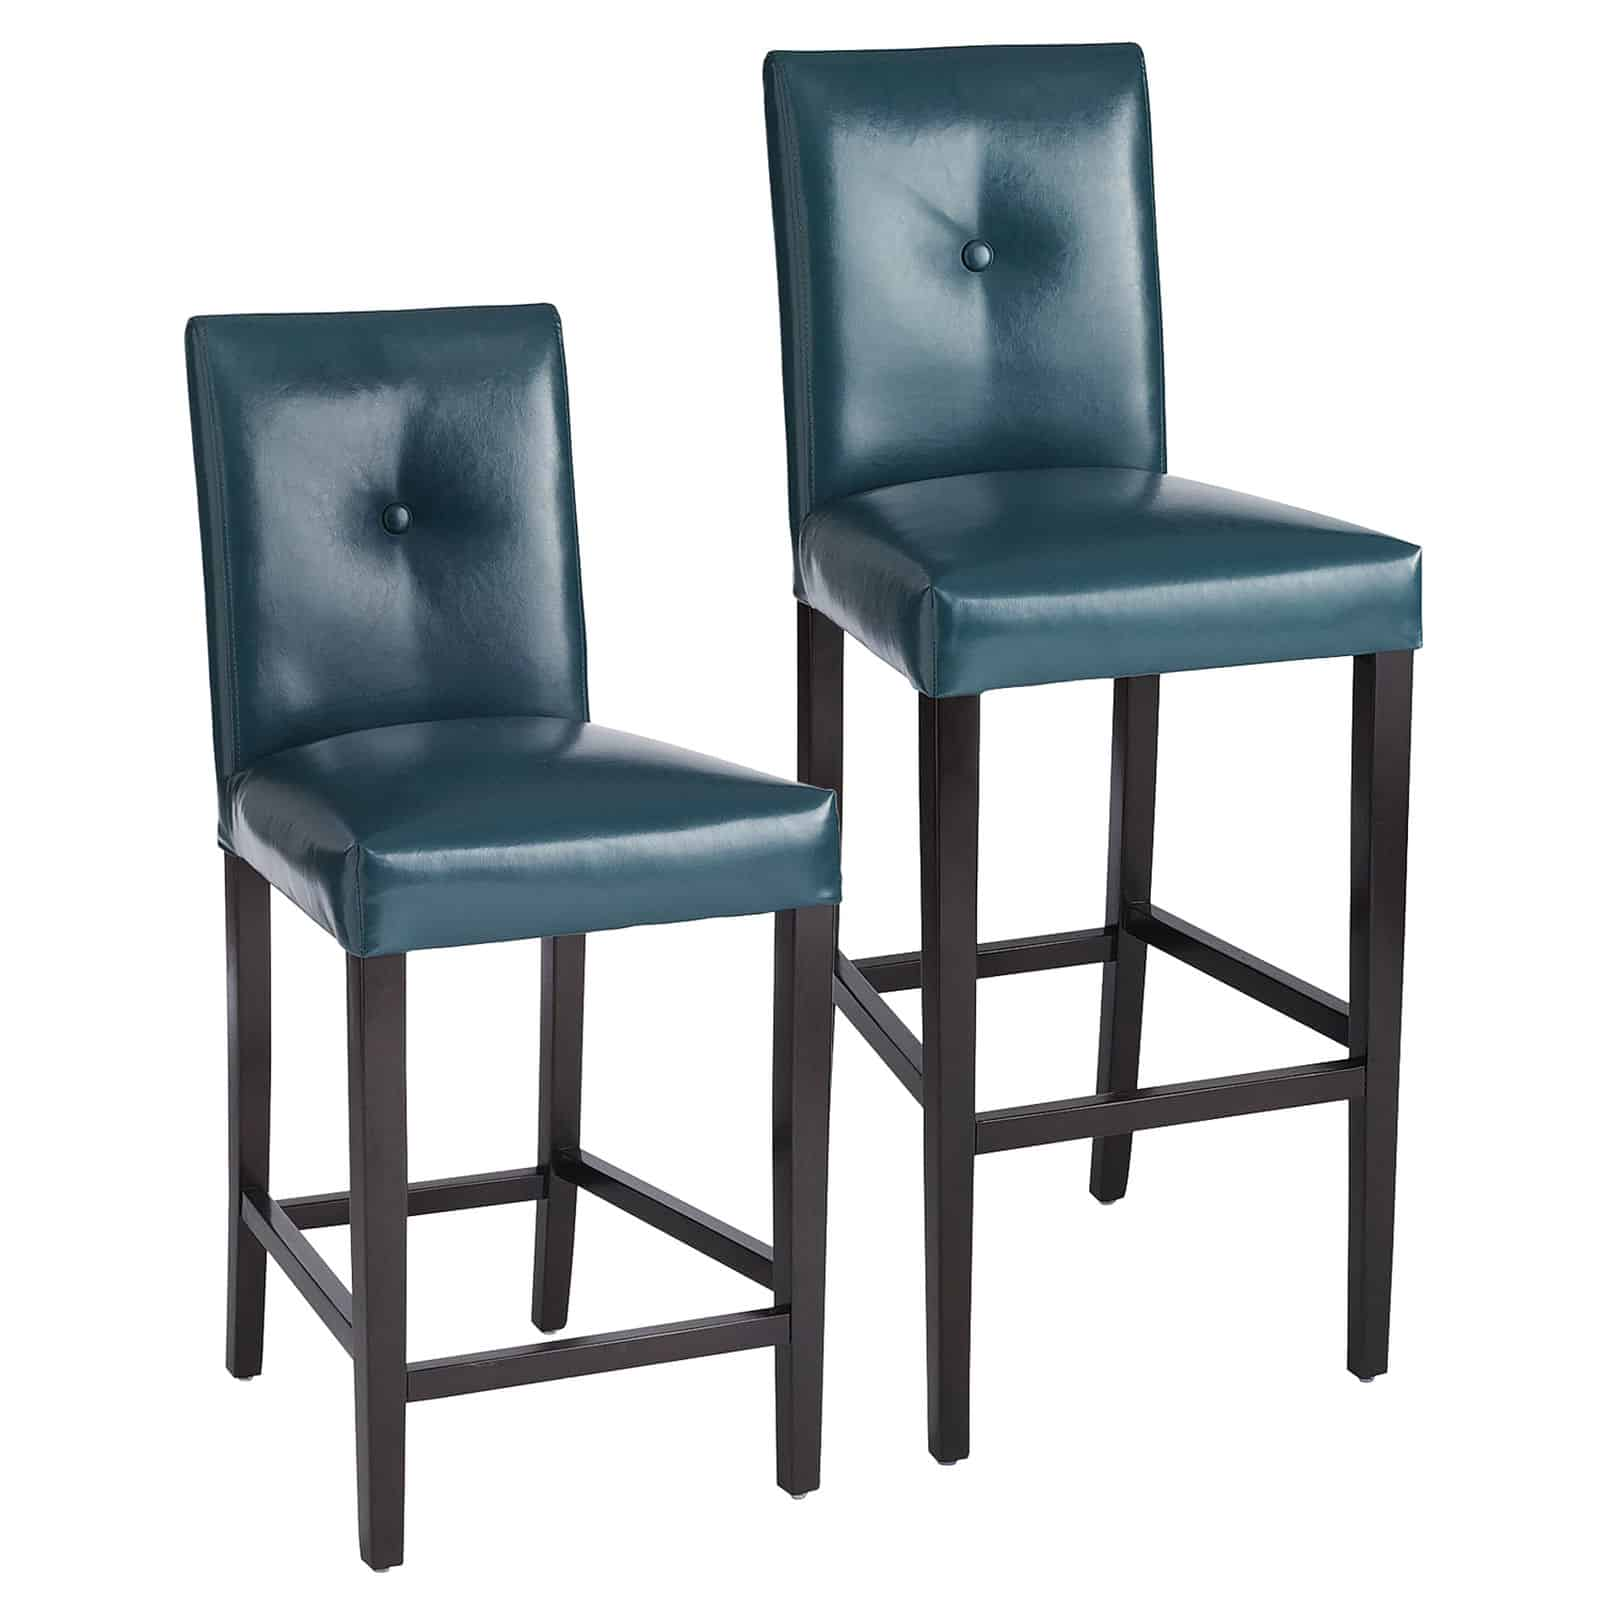 Mason teal bar stools from pier 1